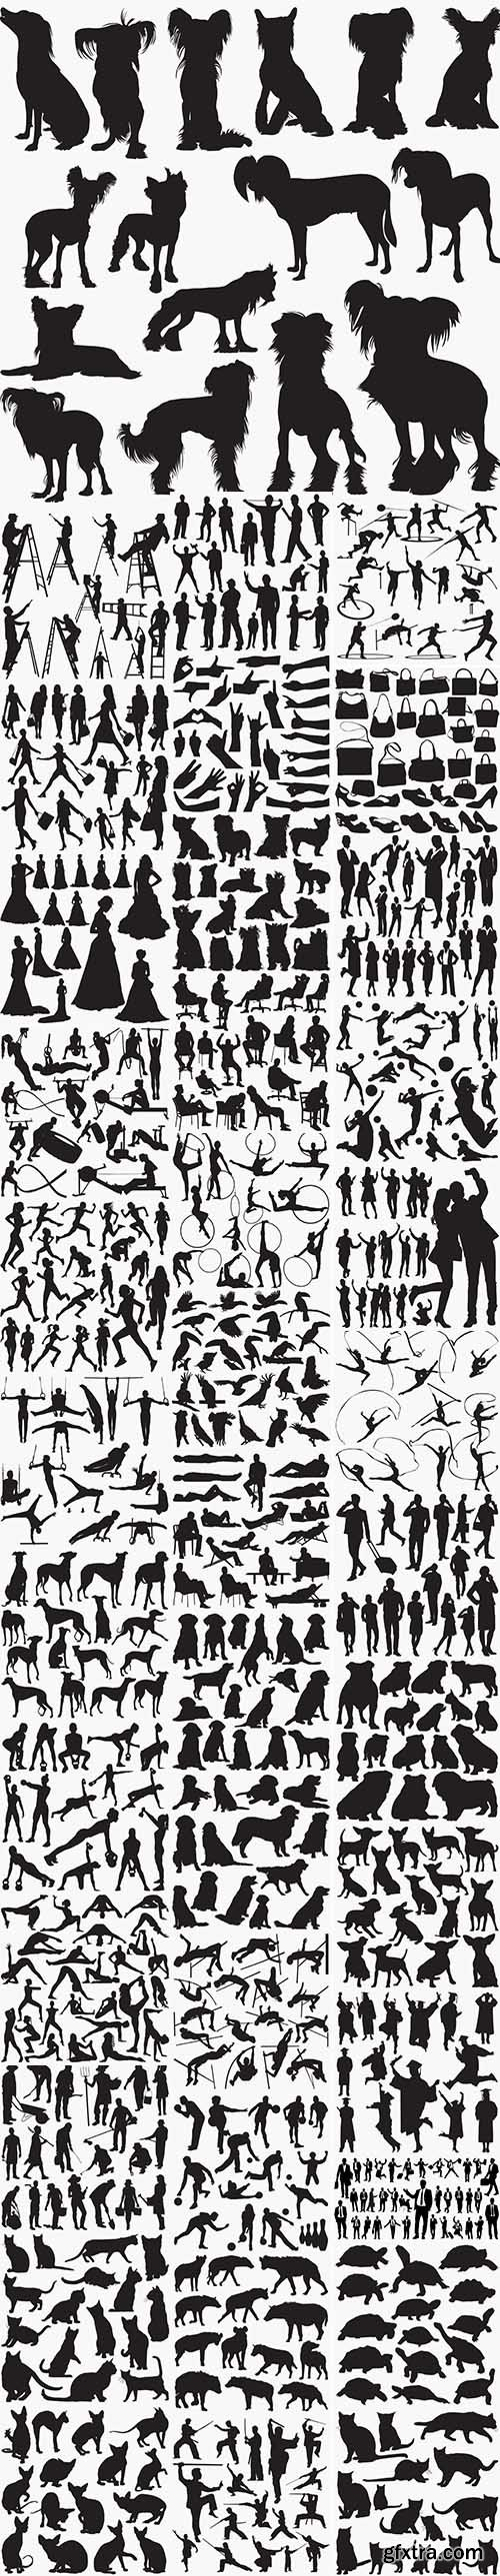 39 Set in 1 Bundle - Vector Black Silhouettes